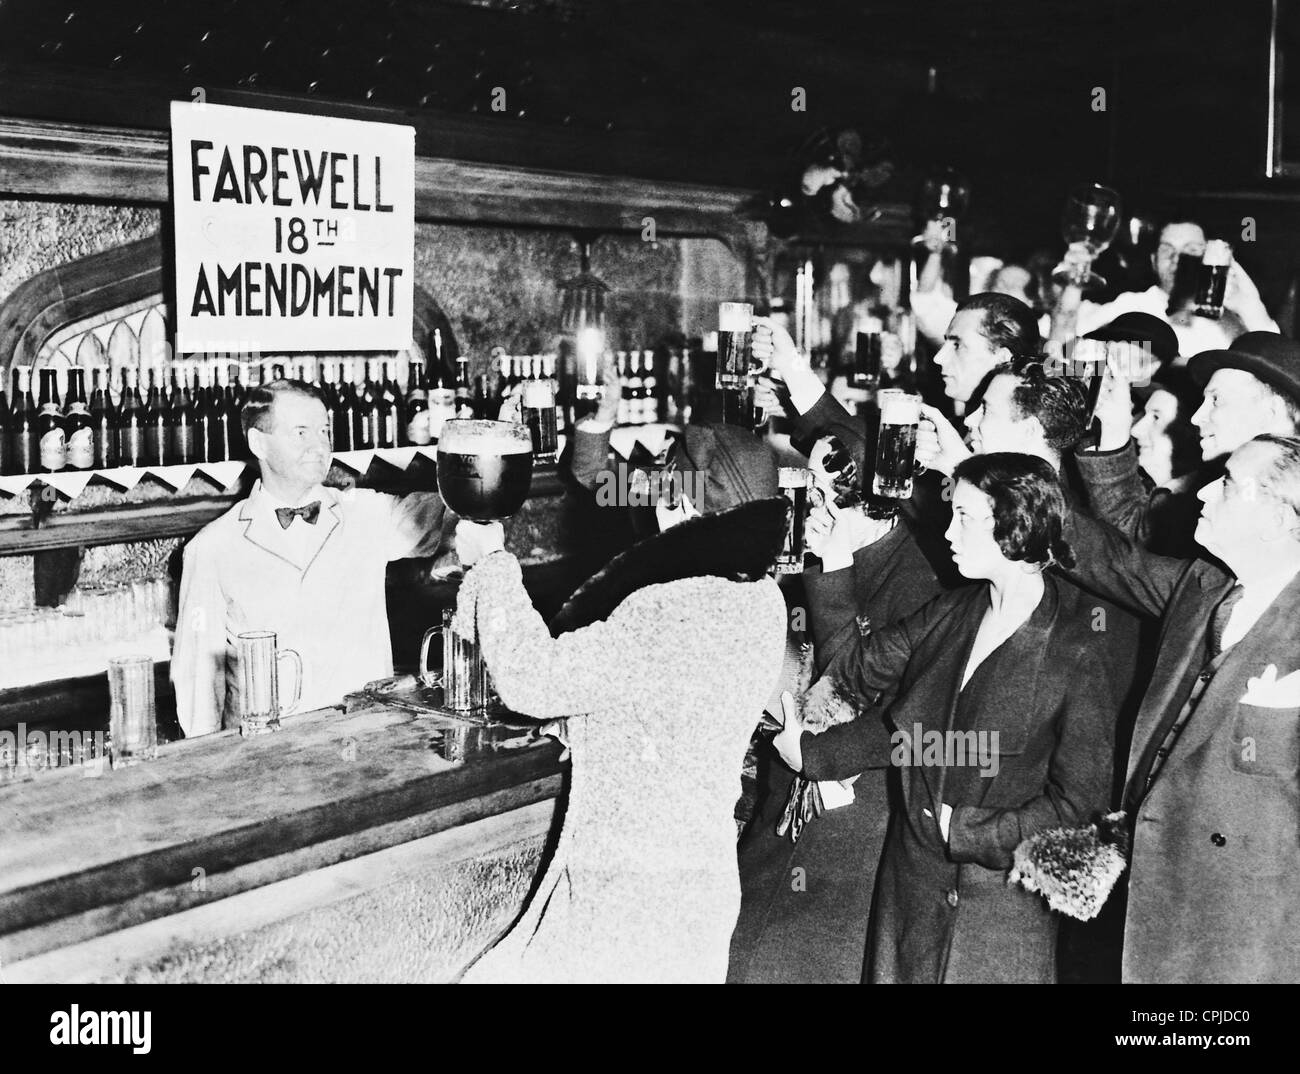 In a bar in New York, the abolition of the 18th Amendment of the U.S. Constitution (18th Amendment) is celebrated. - Stock Image